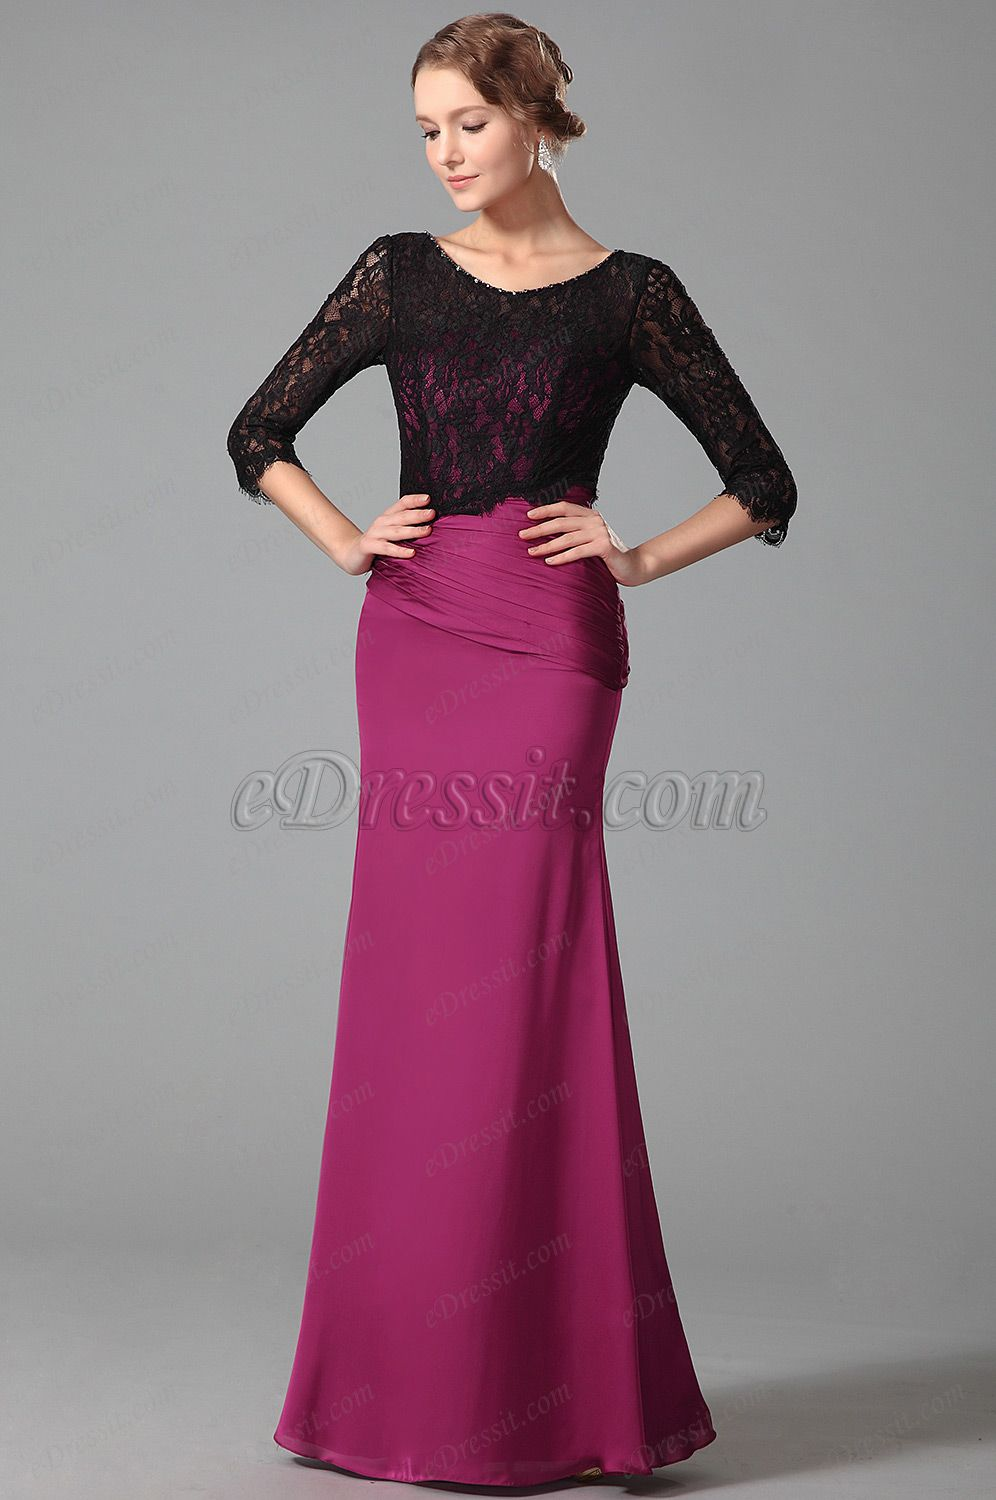 Stunning Floor Length Evening Dress With Long Lace Sleeves (26152812 ...